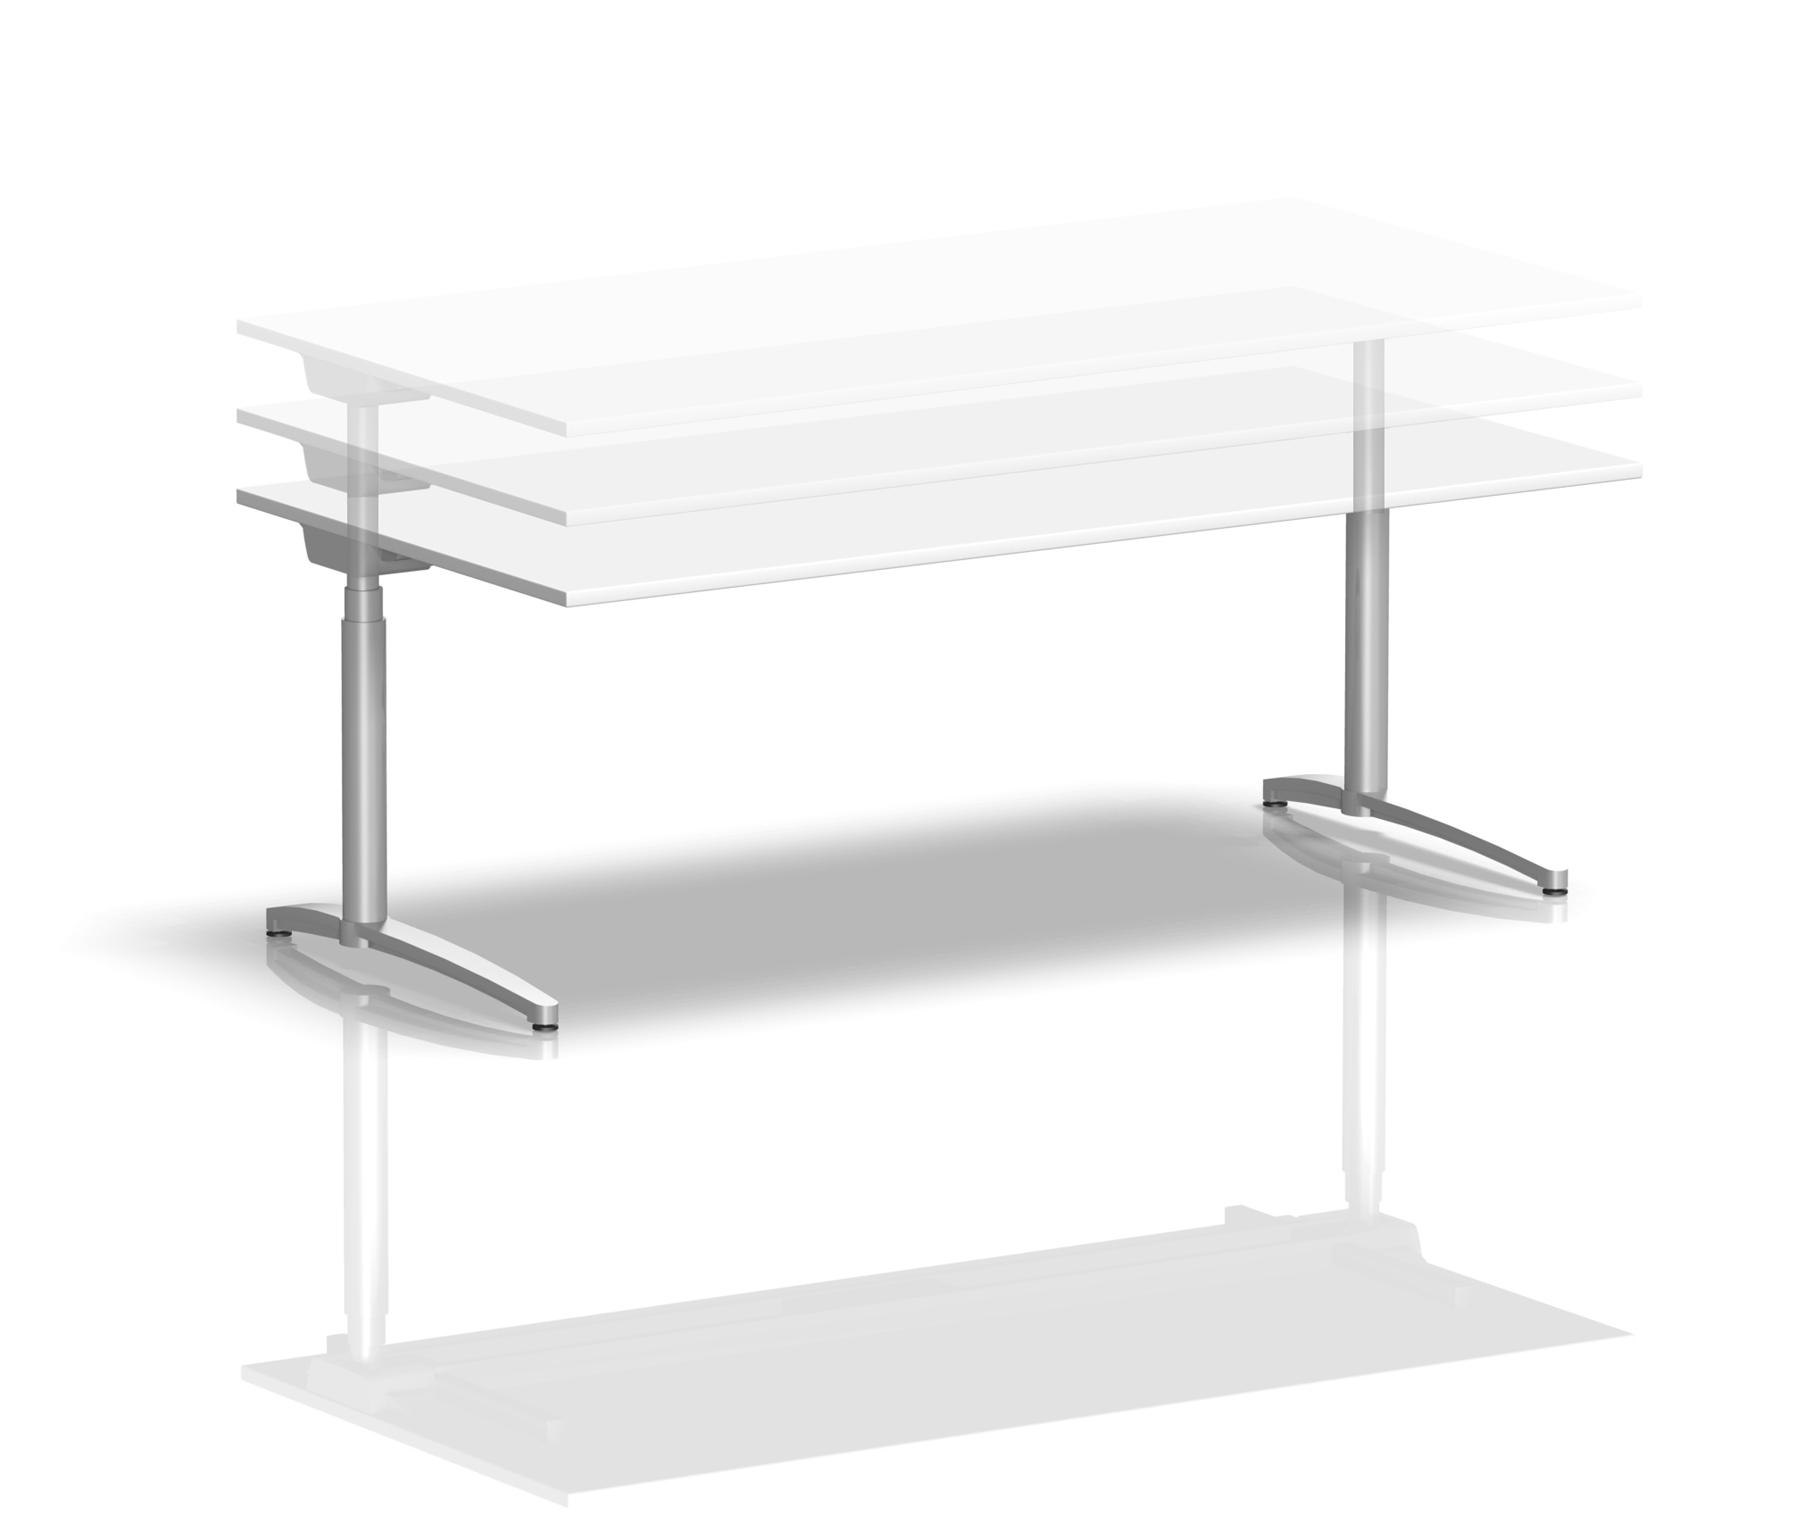 CANVARO DESK - Individual desks from Assmann Büromöbel | Architonic